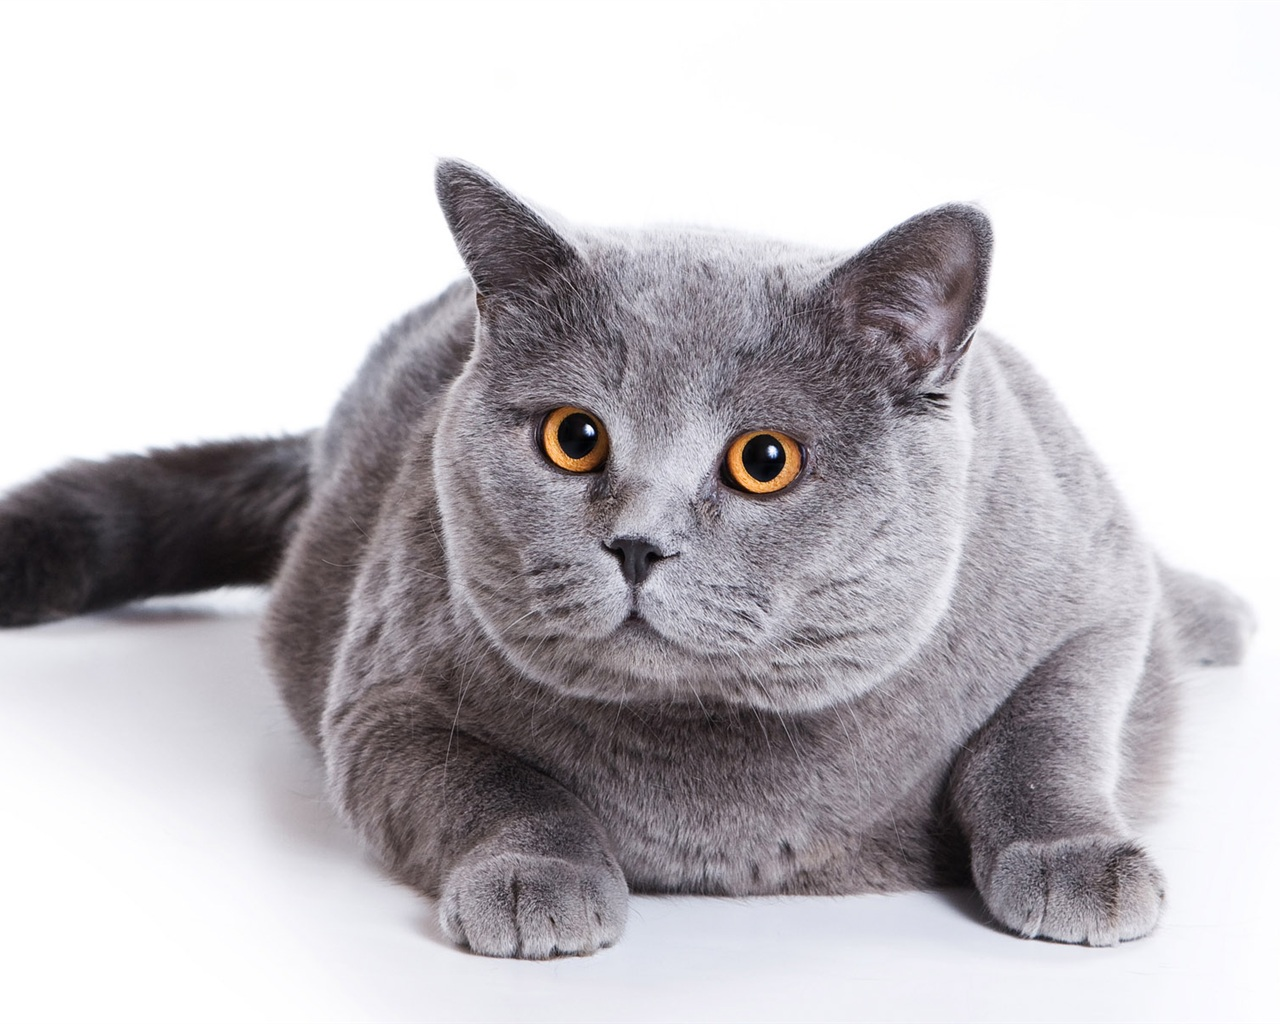 Is Your Cat The Correct Weight?